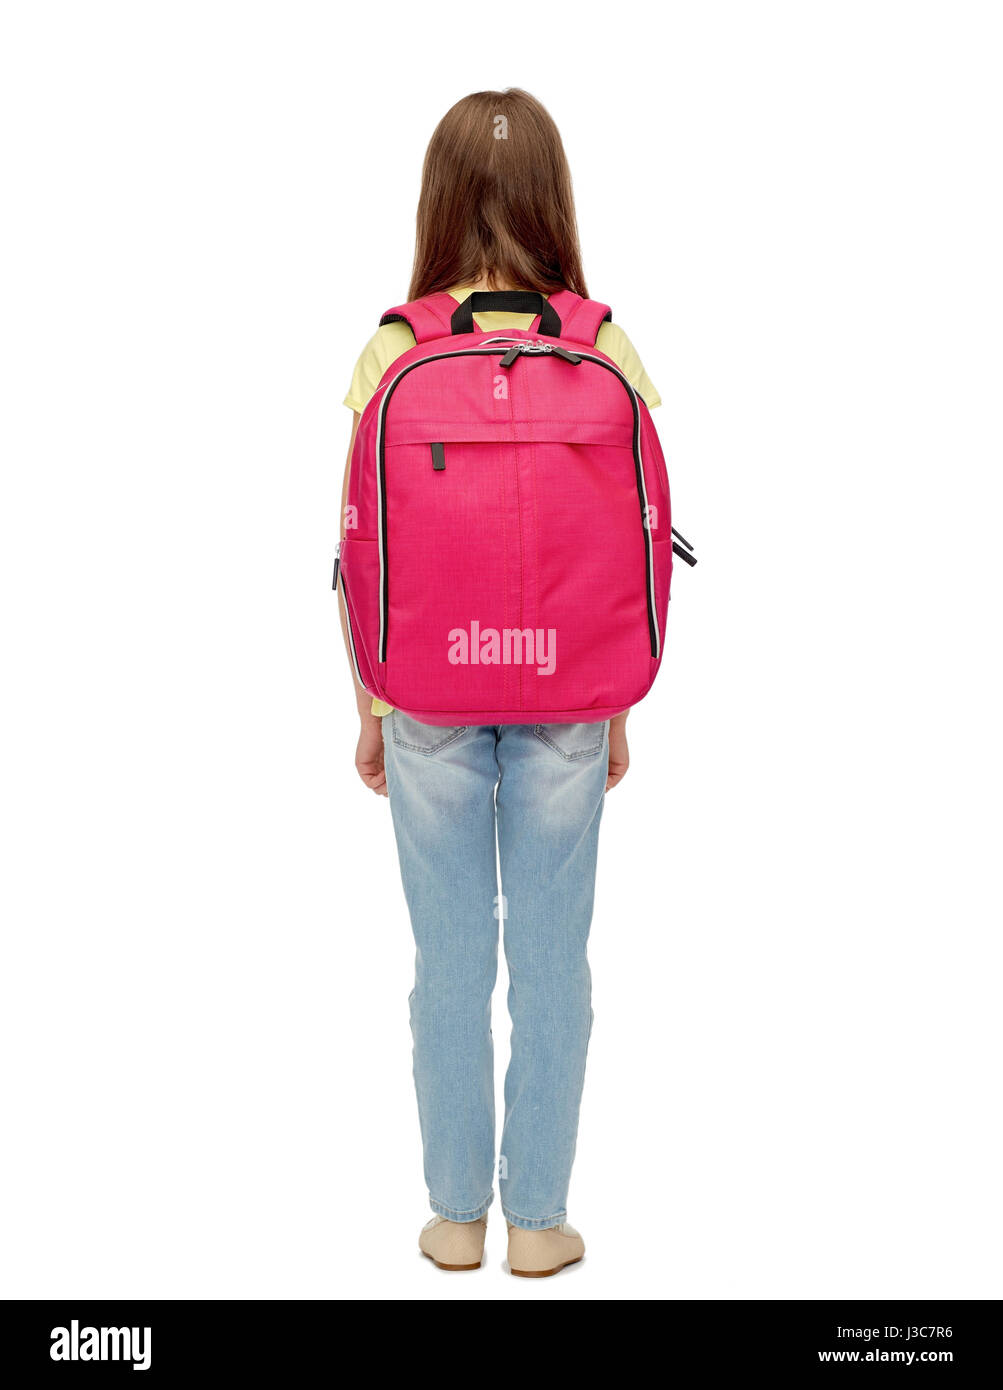 little student girl with school bag from back - Stock Image